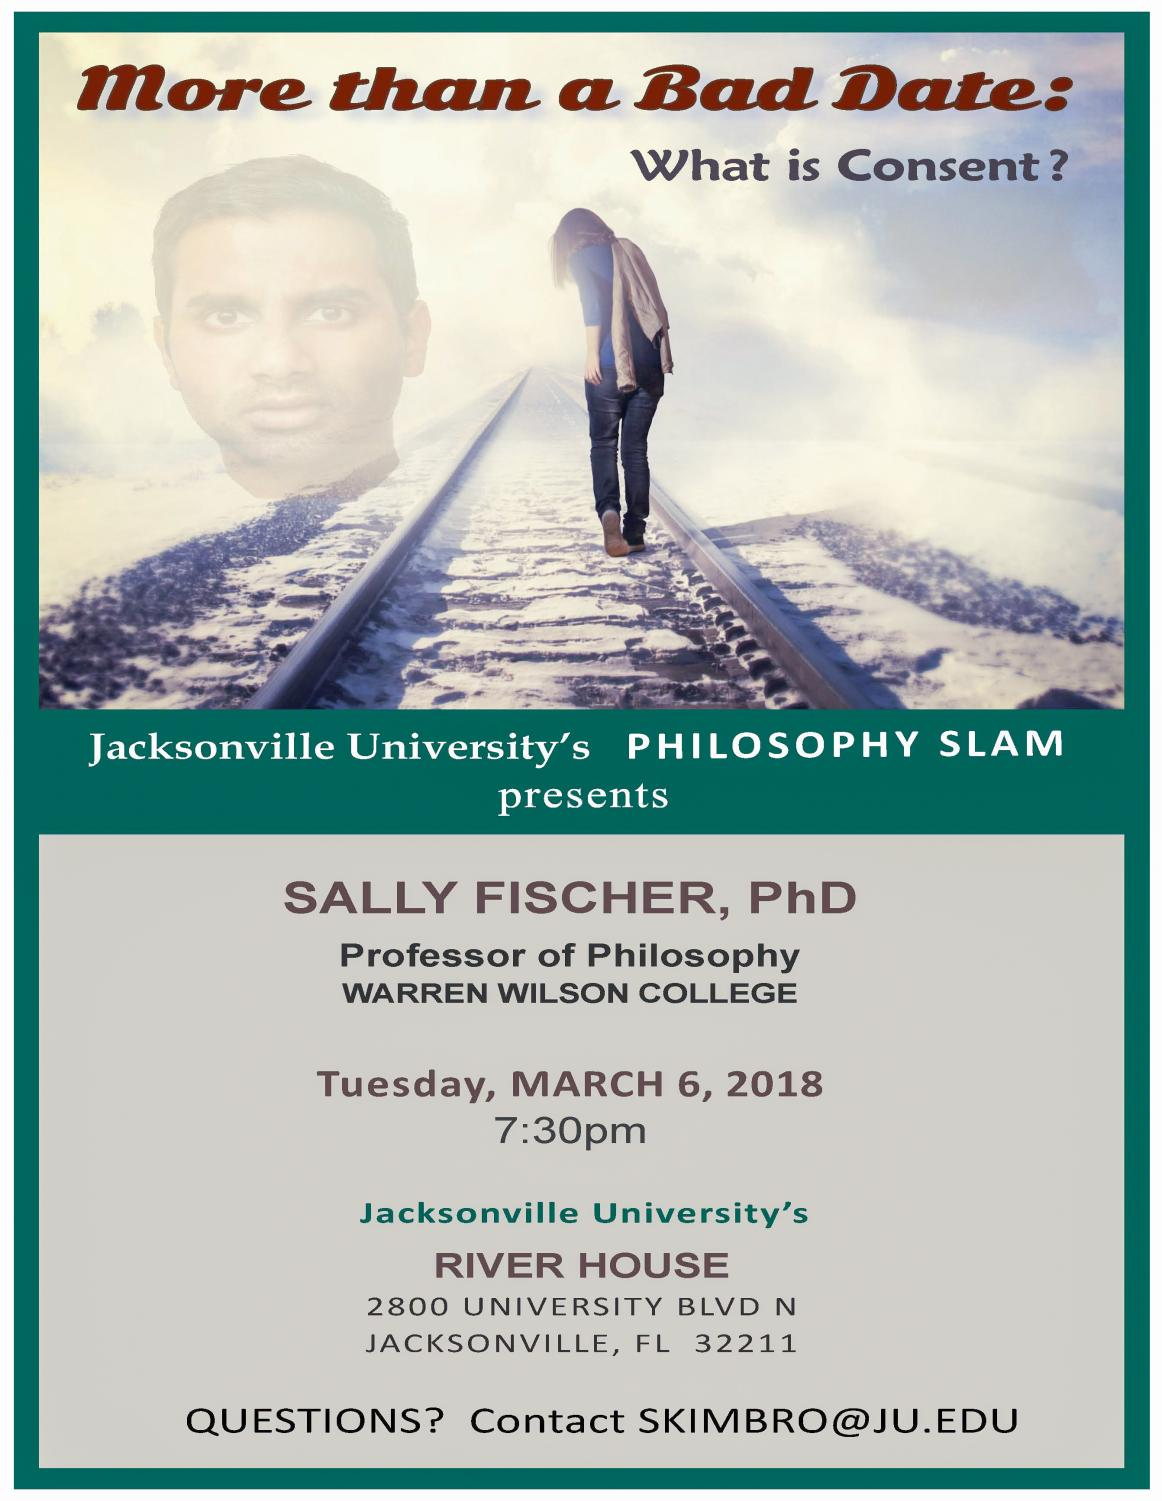 A poster displays information about the philosophy slam.